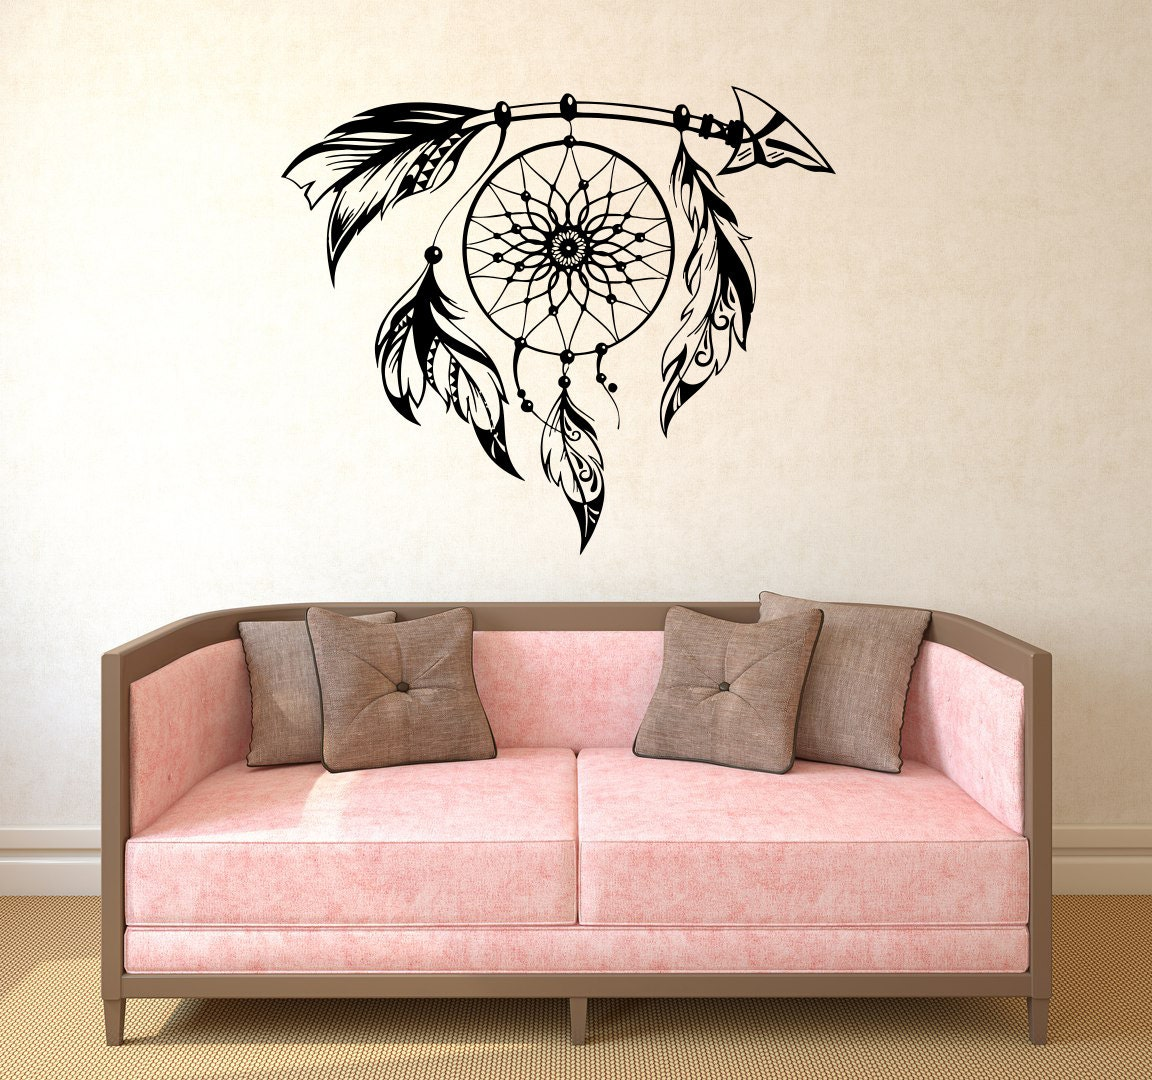 Arrow decal dream catcher wall decal vinyl sticker decals boho for Decor dreams